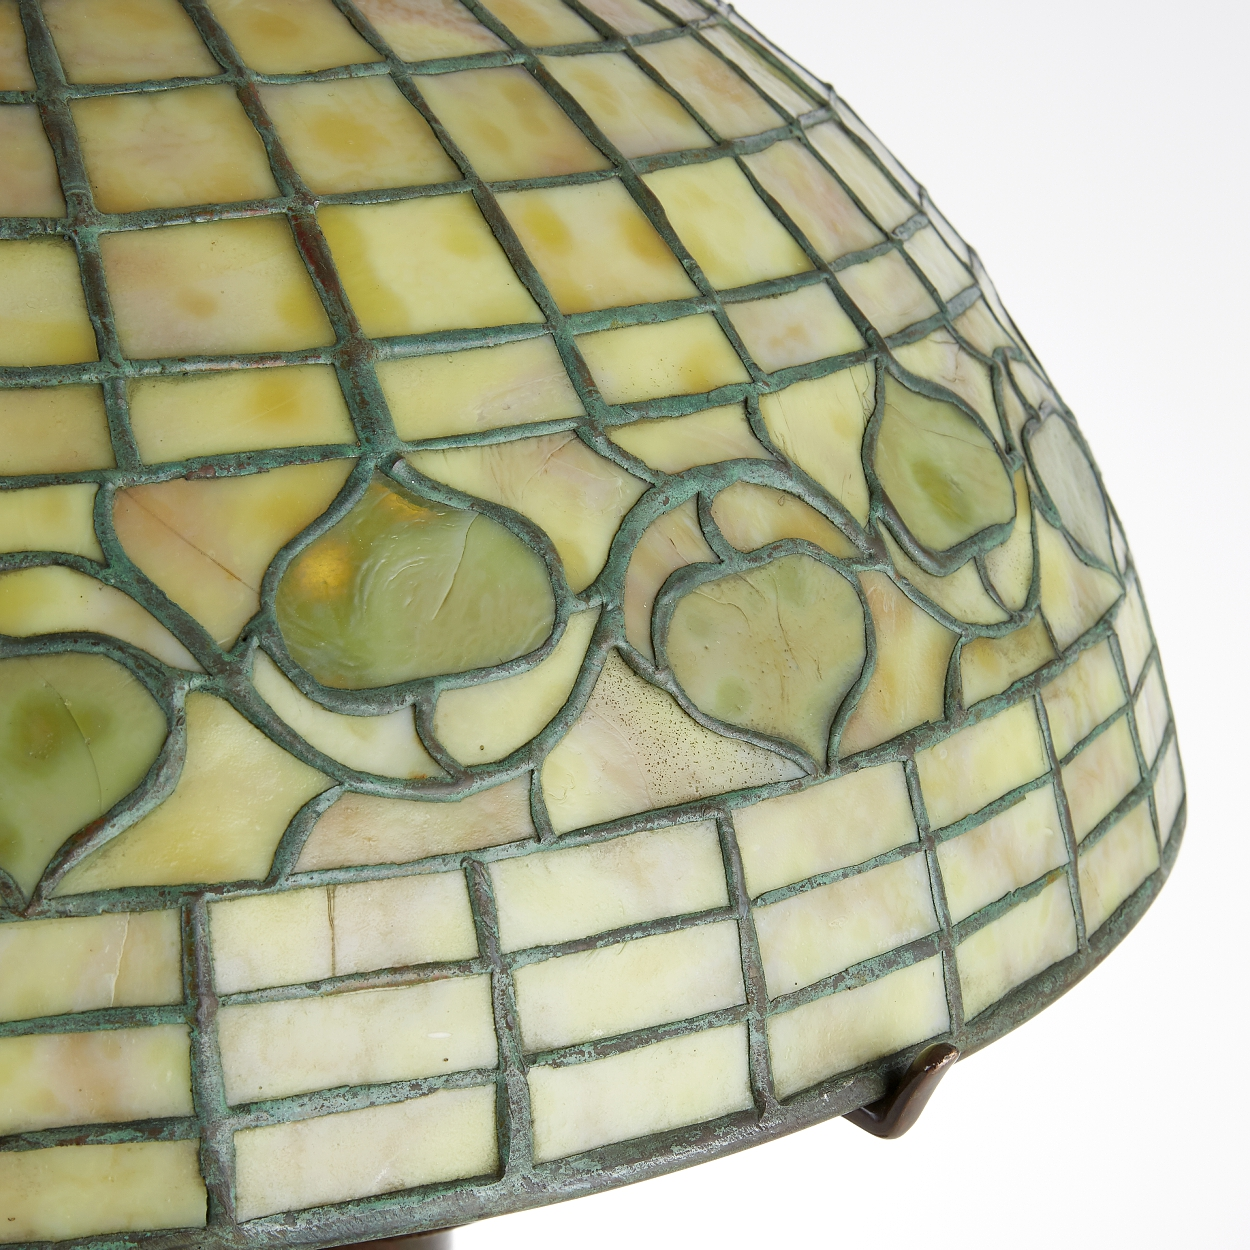 Louis Comfort Tiffany, bordslampa